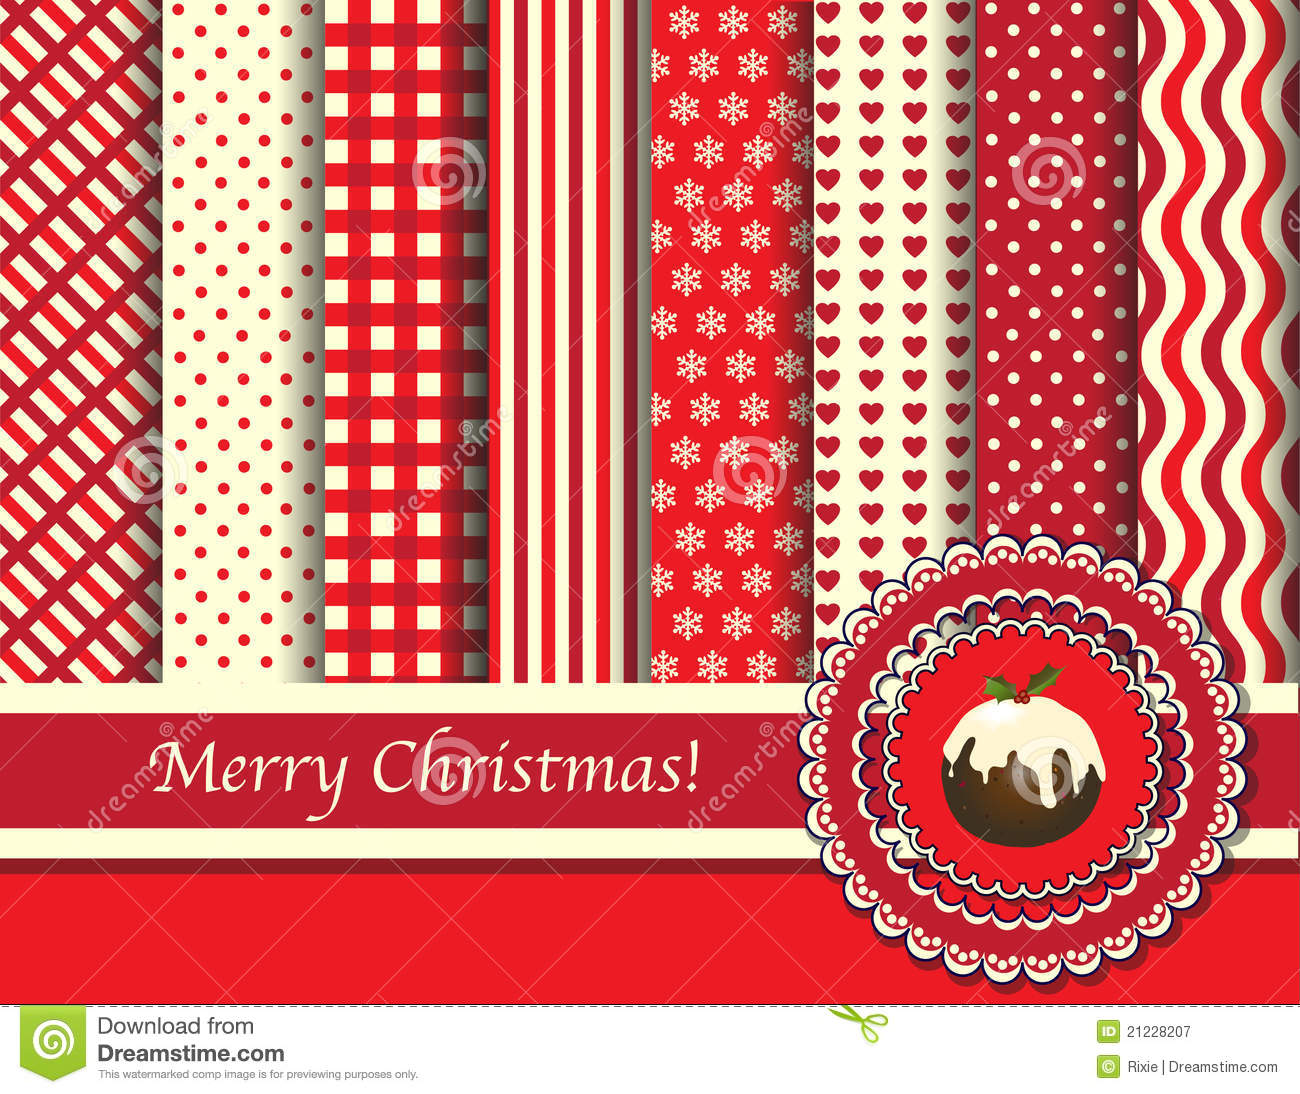 Christmas Scrapbooking Red And Cream Stock Vector Illustration Of